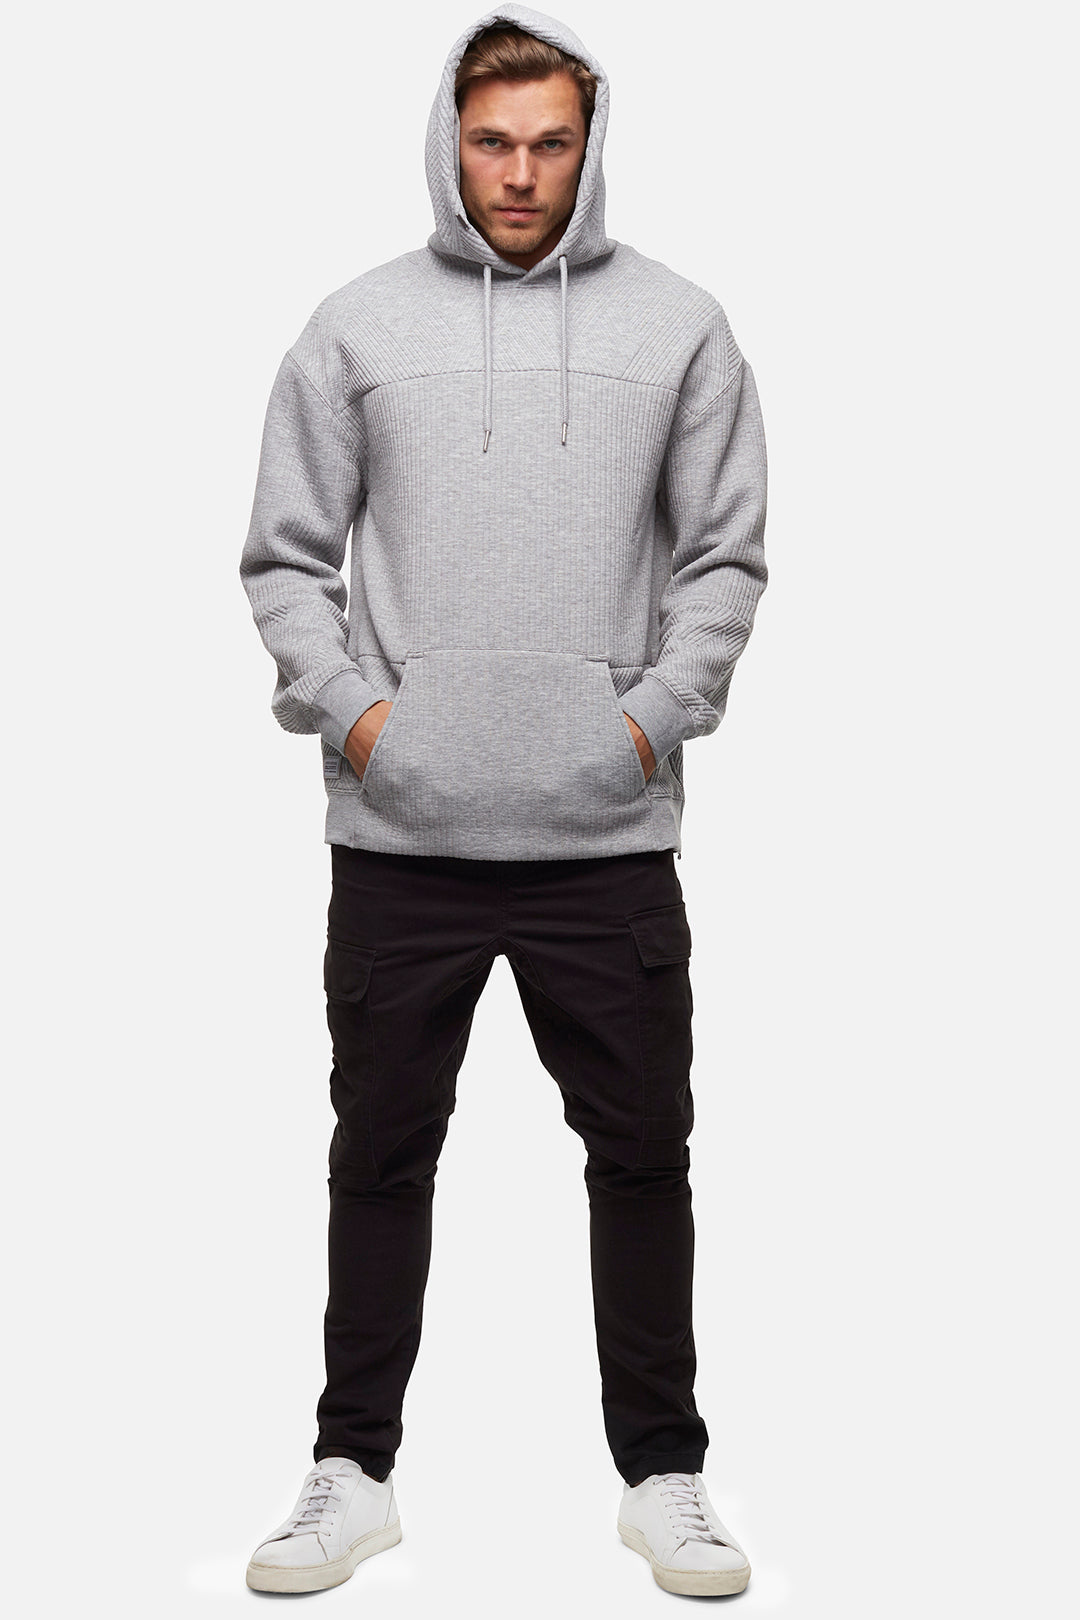 The Liston Hoodie - Light Marle Grey